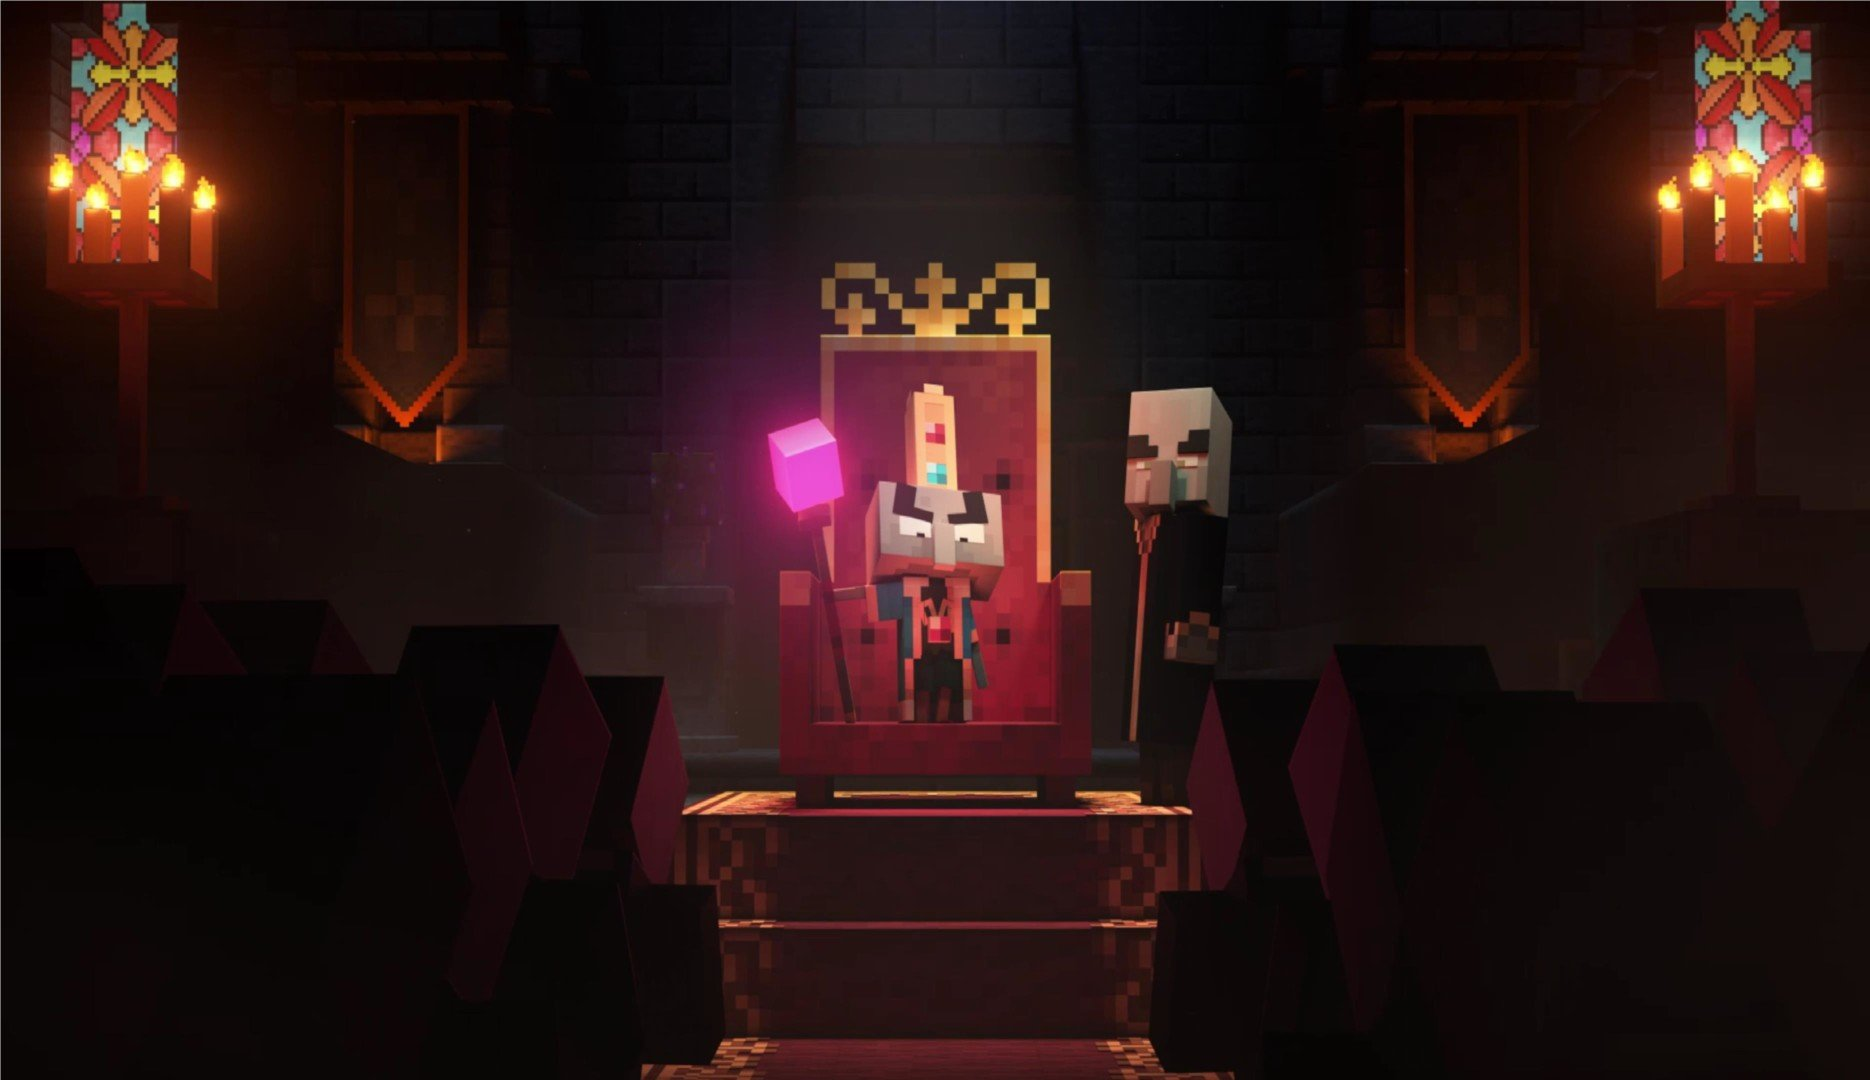 Minecraft Dungeon Fan Art Looks Fantastic And May Change How You See The Arch-Illager